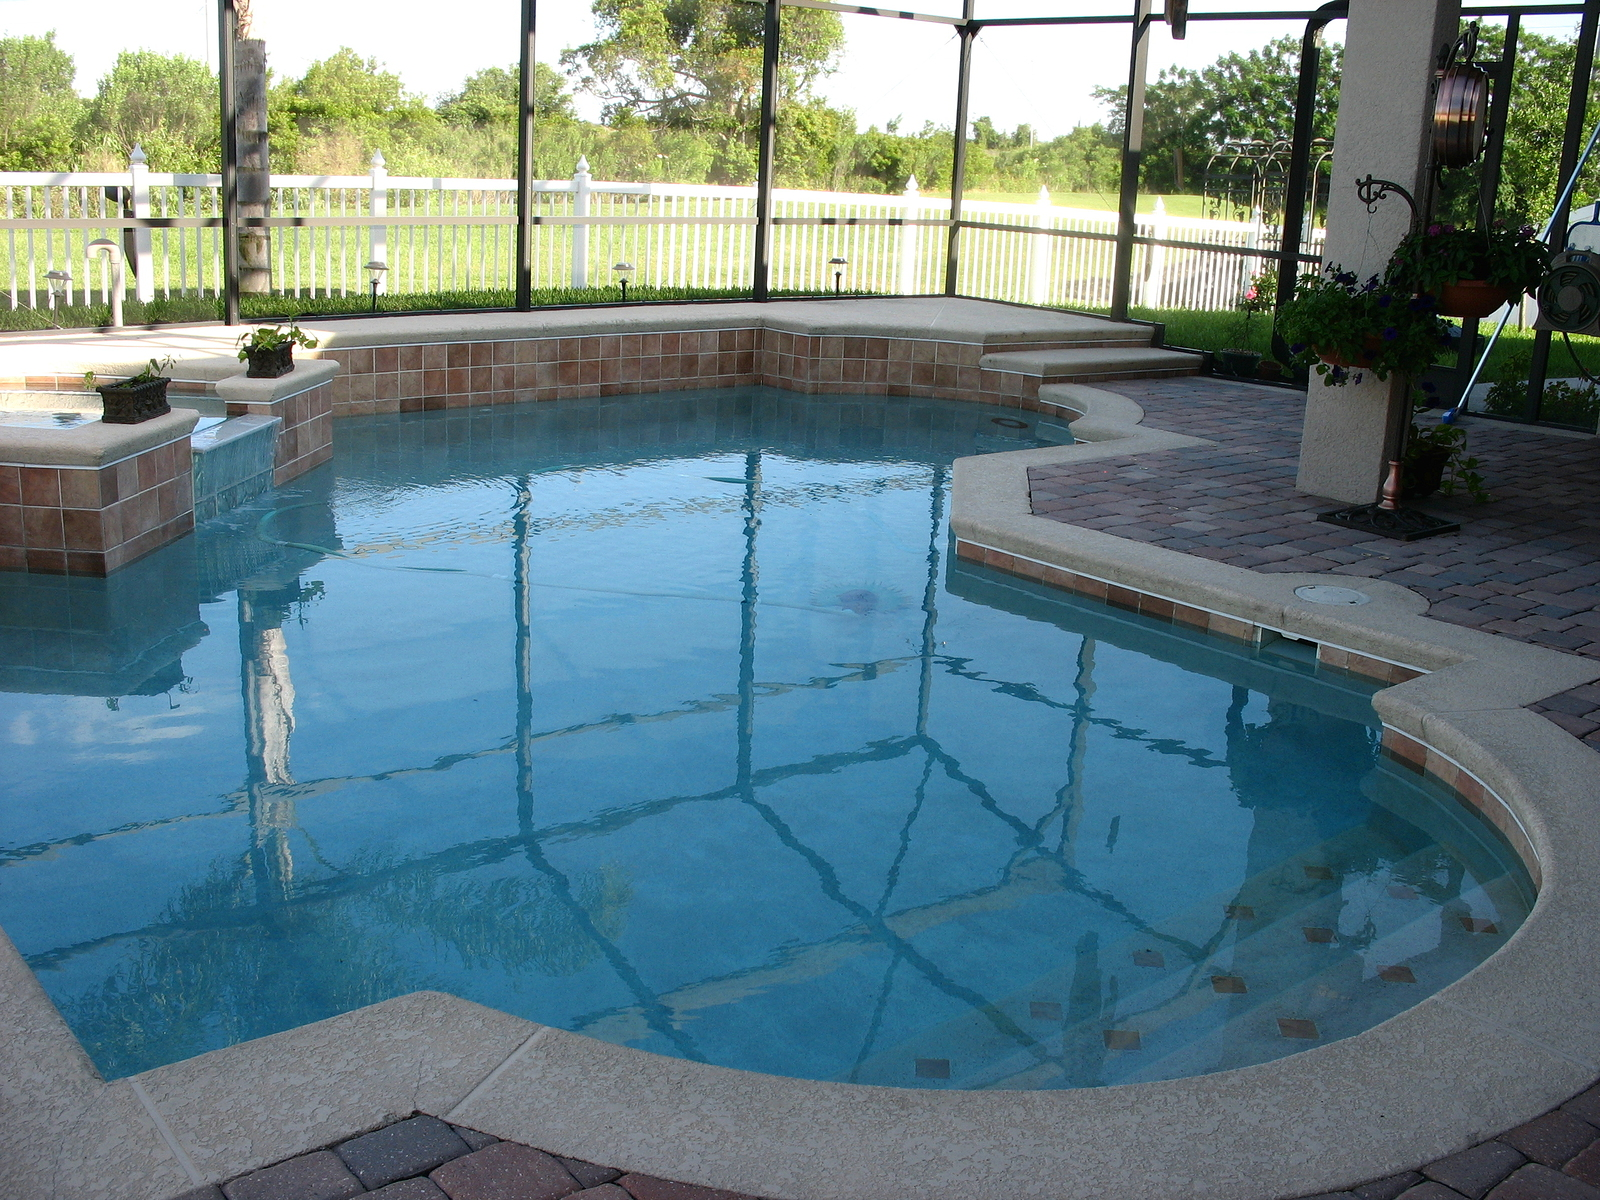 Caring for Your Pool in the Off-Season